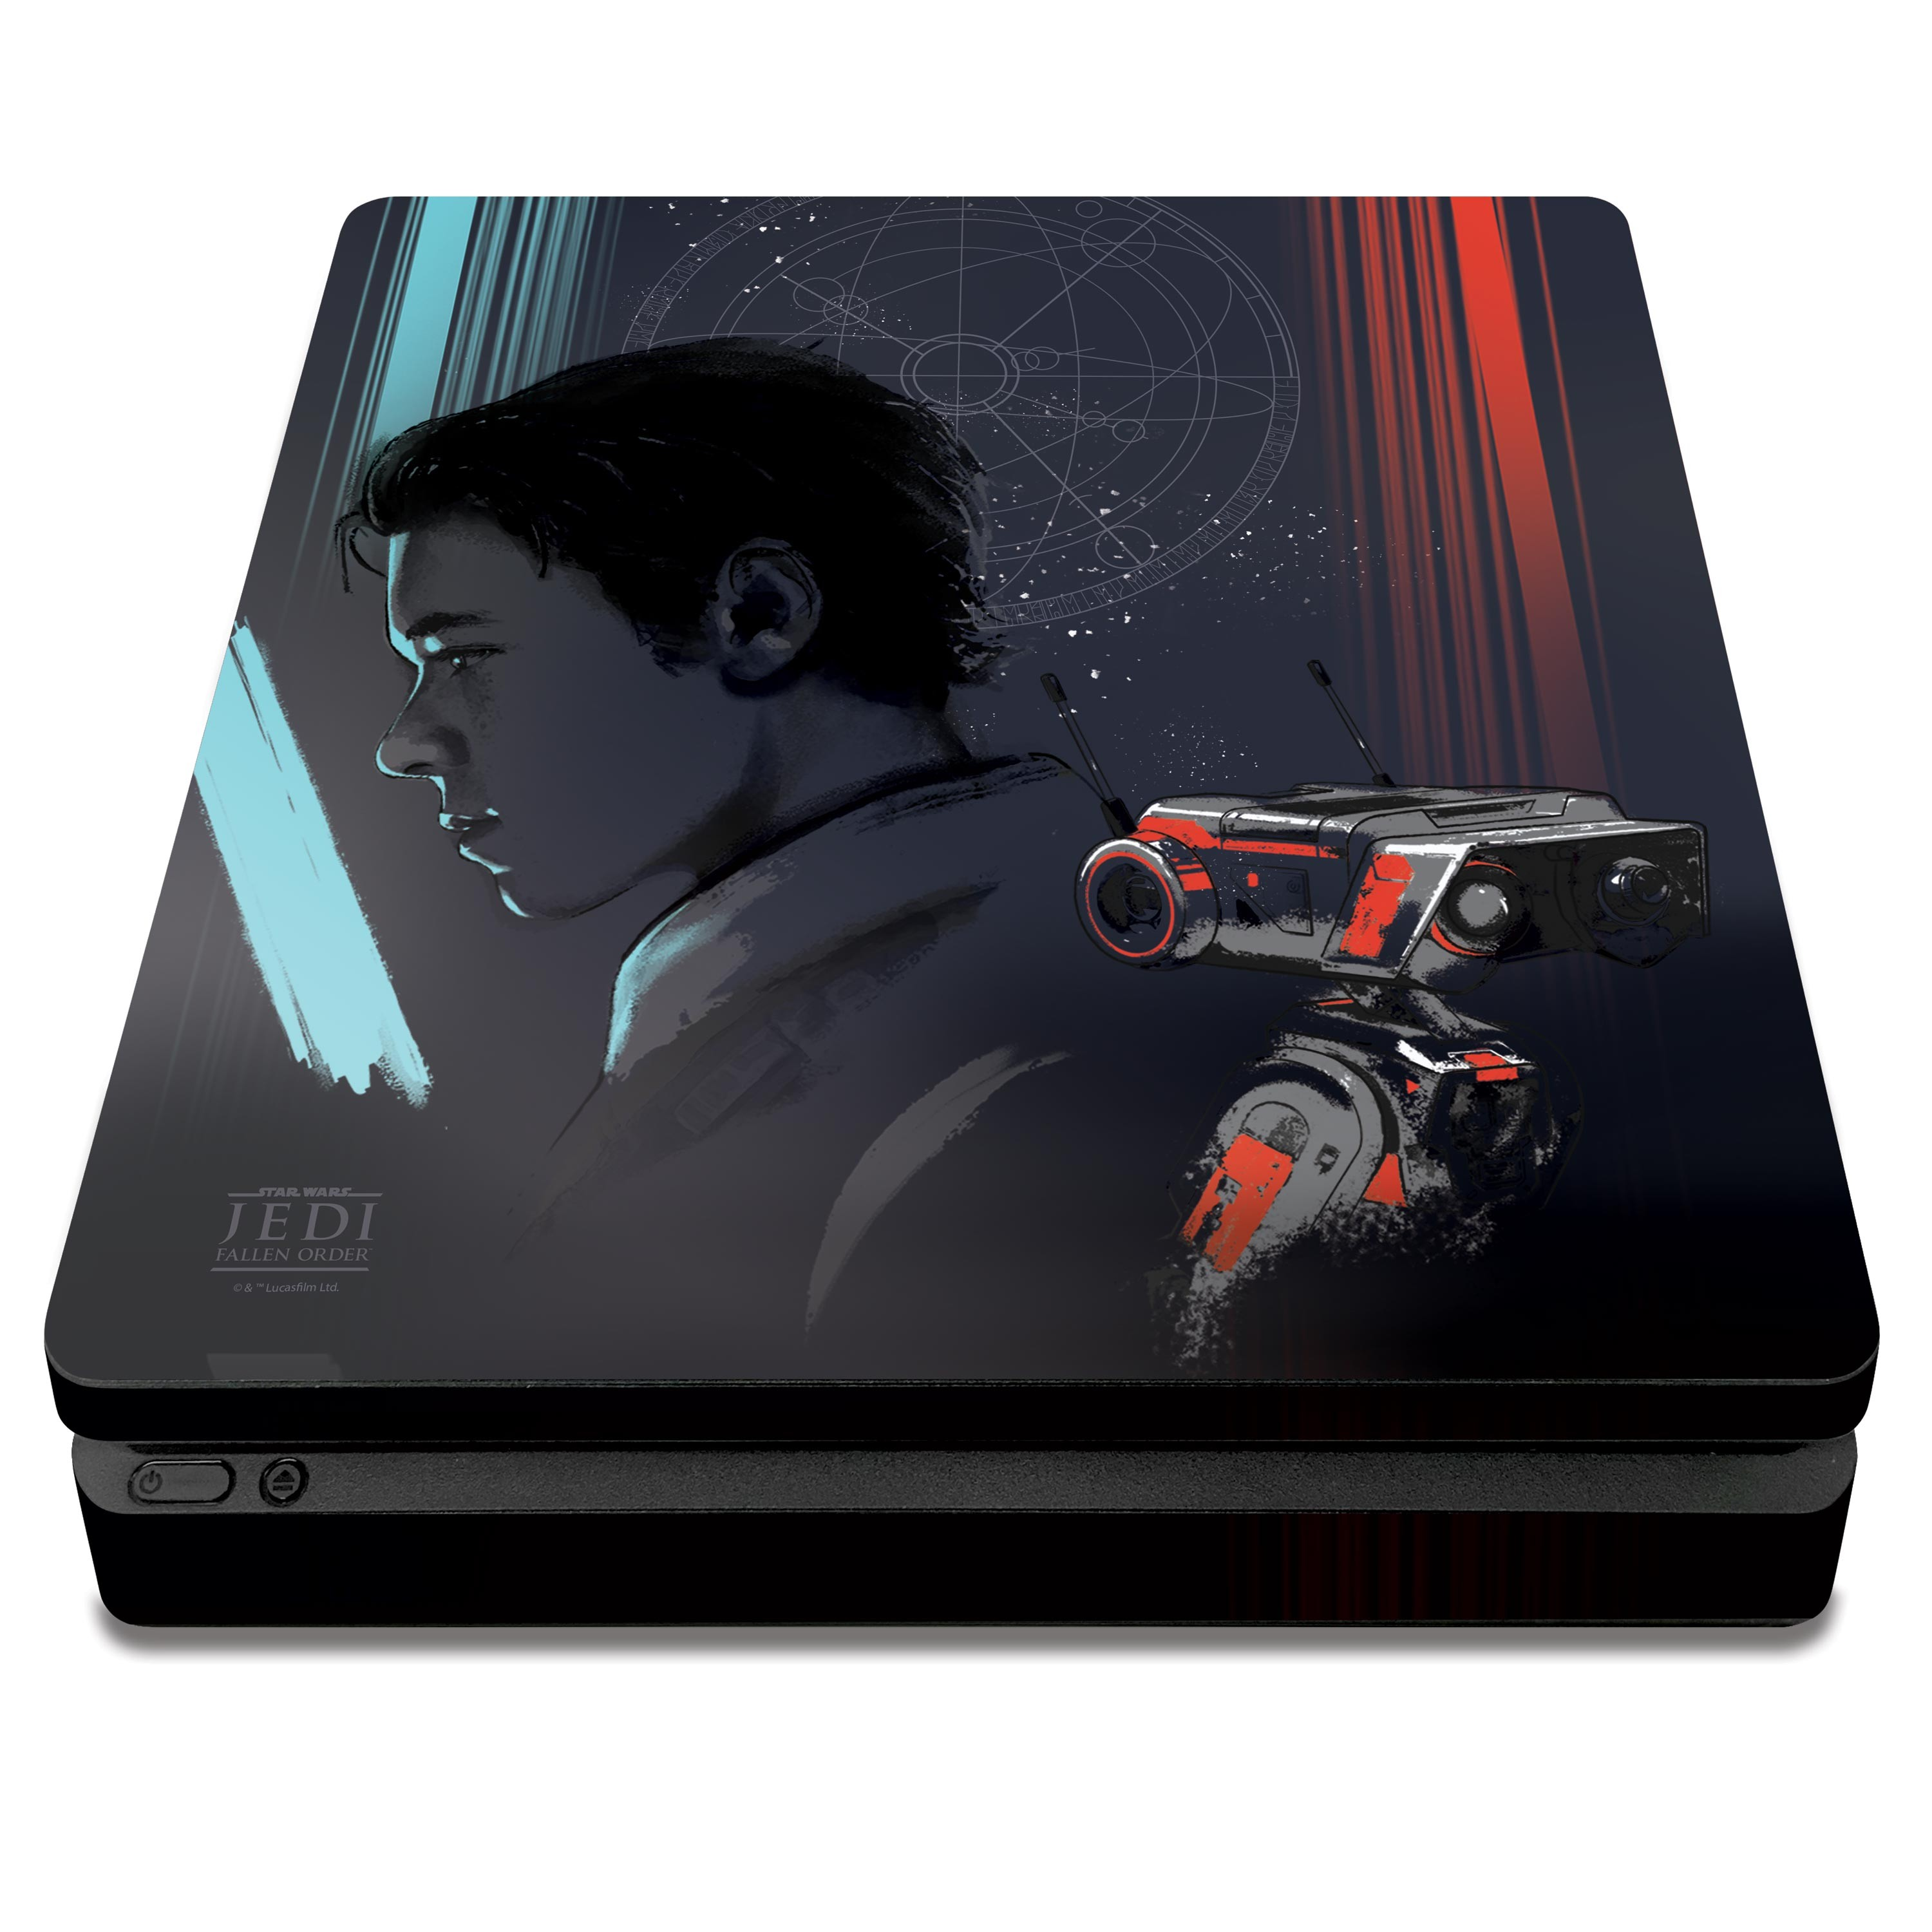 PS4 Slim Console & Controller Skin with a Star Wars Jedi Fallen Order Cal Kestis/BD-1 Design, Image 1